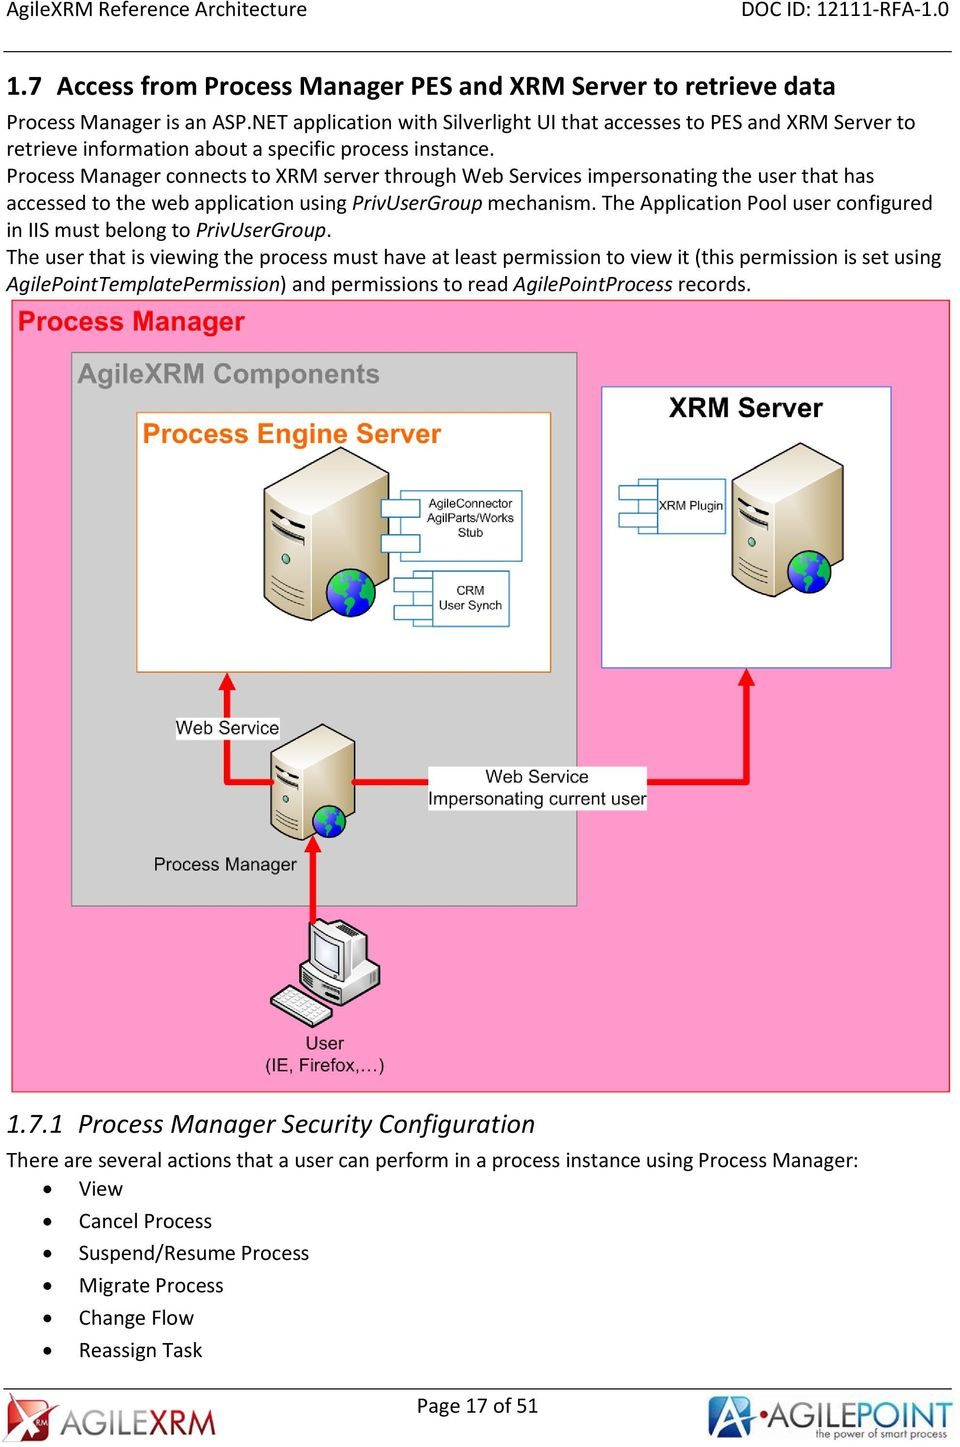 Process Manager connects to XRM server through Web Services impersonating the user that has accessed to the web application using PrivUserGroup mechanism.